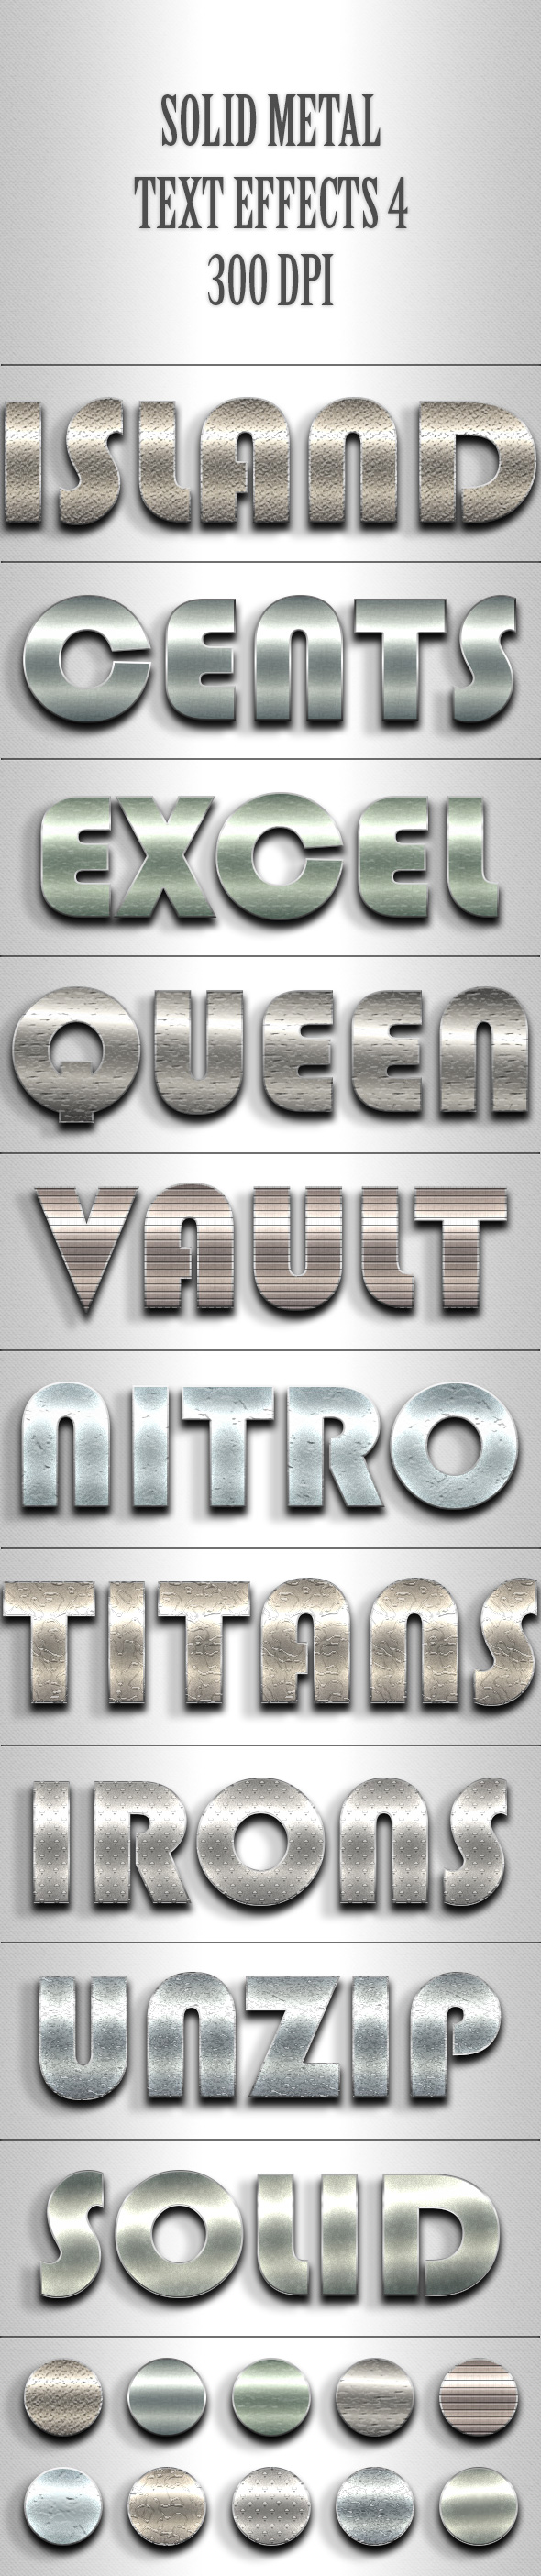 Solid Metal Text Effects 4 - Text Effects Actions